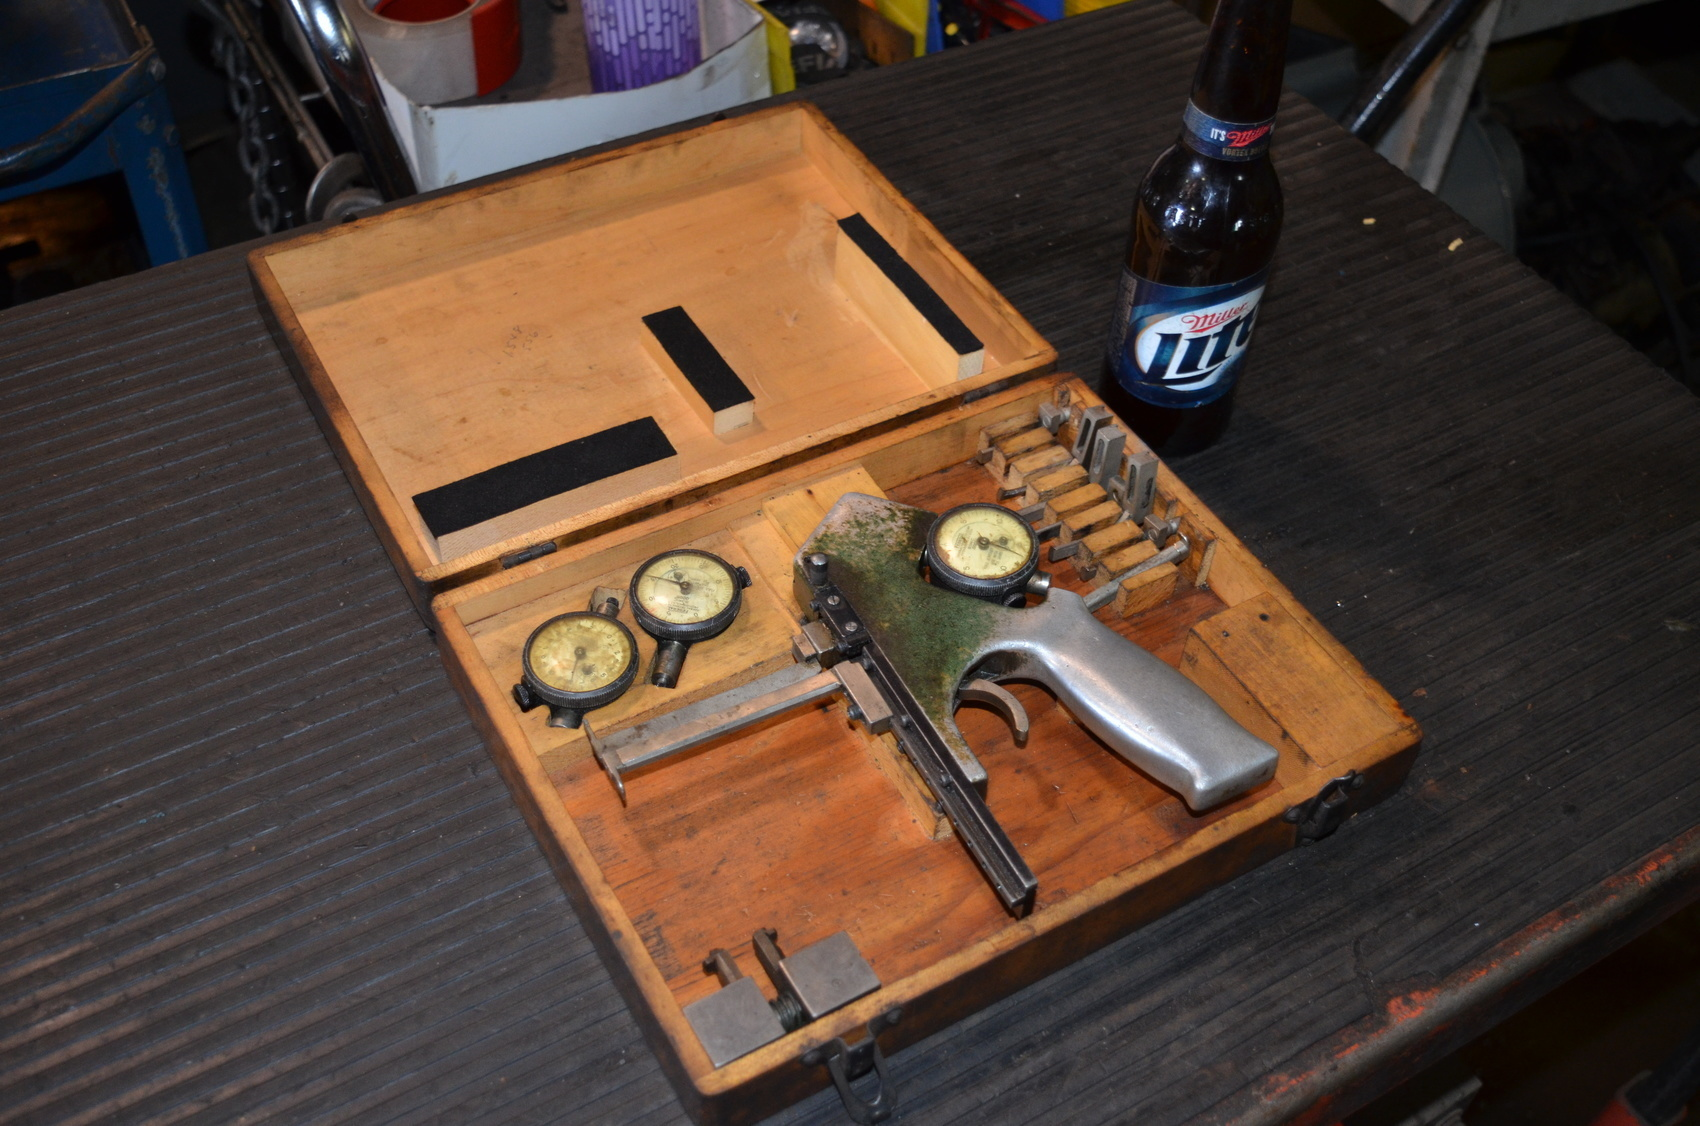 Federal AT-23 Inside Caliper Micrometer Gage Set in a wooden case